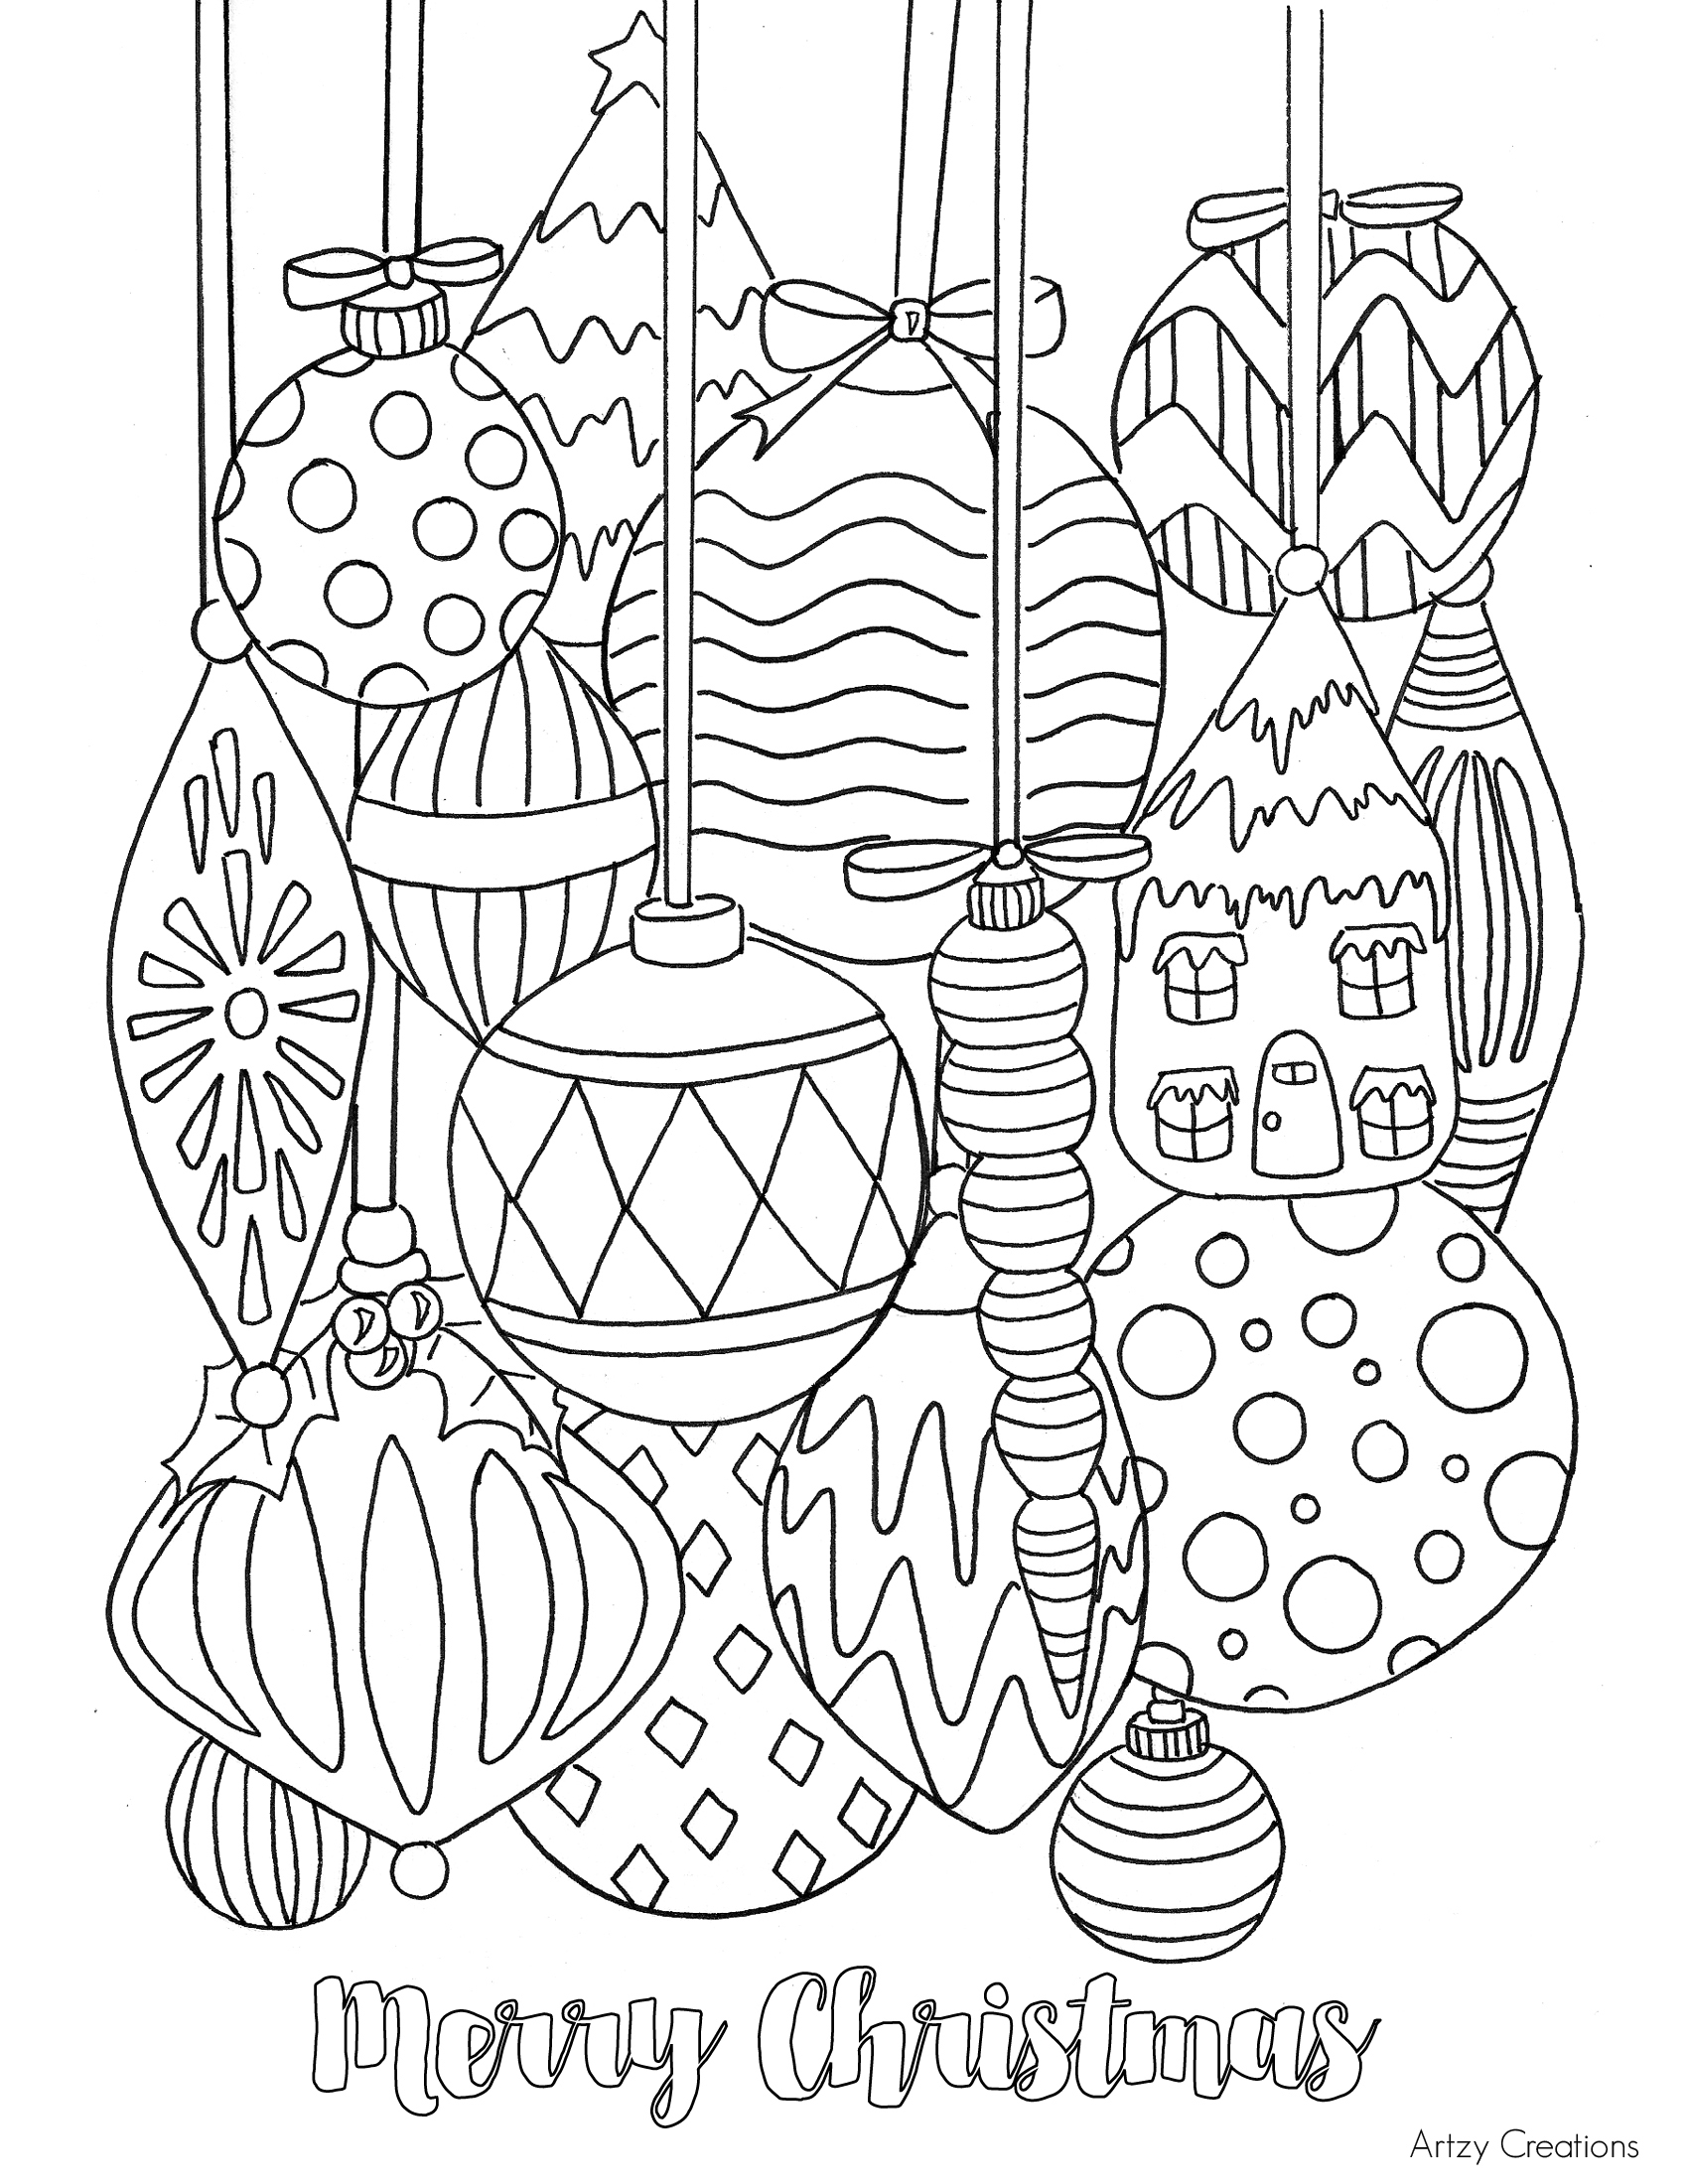 Christmas Coloring Free Printables With Printable Pages For Adults Download